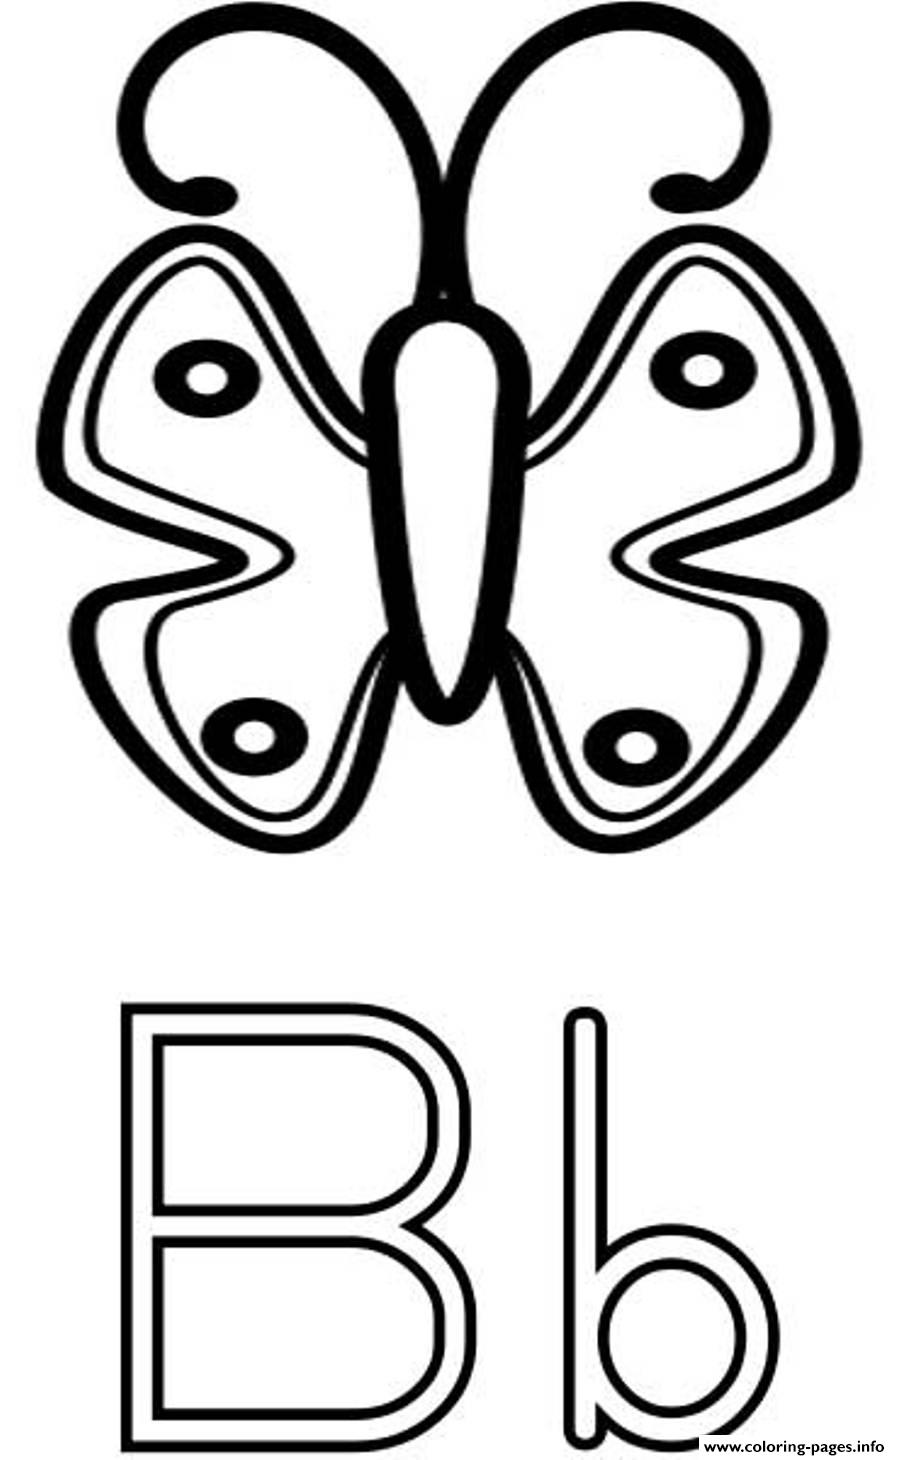 Butterfly B Alphabet Sfd9a coloring pages